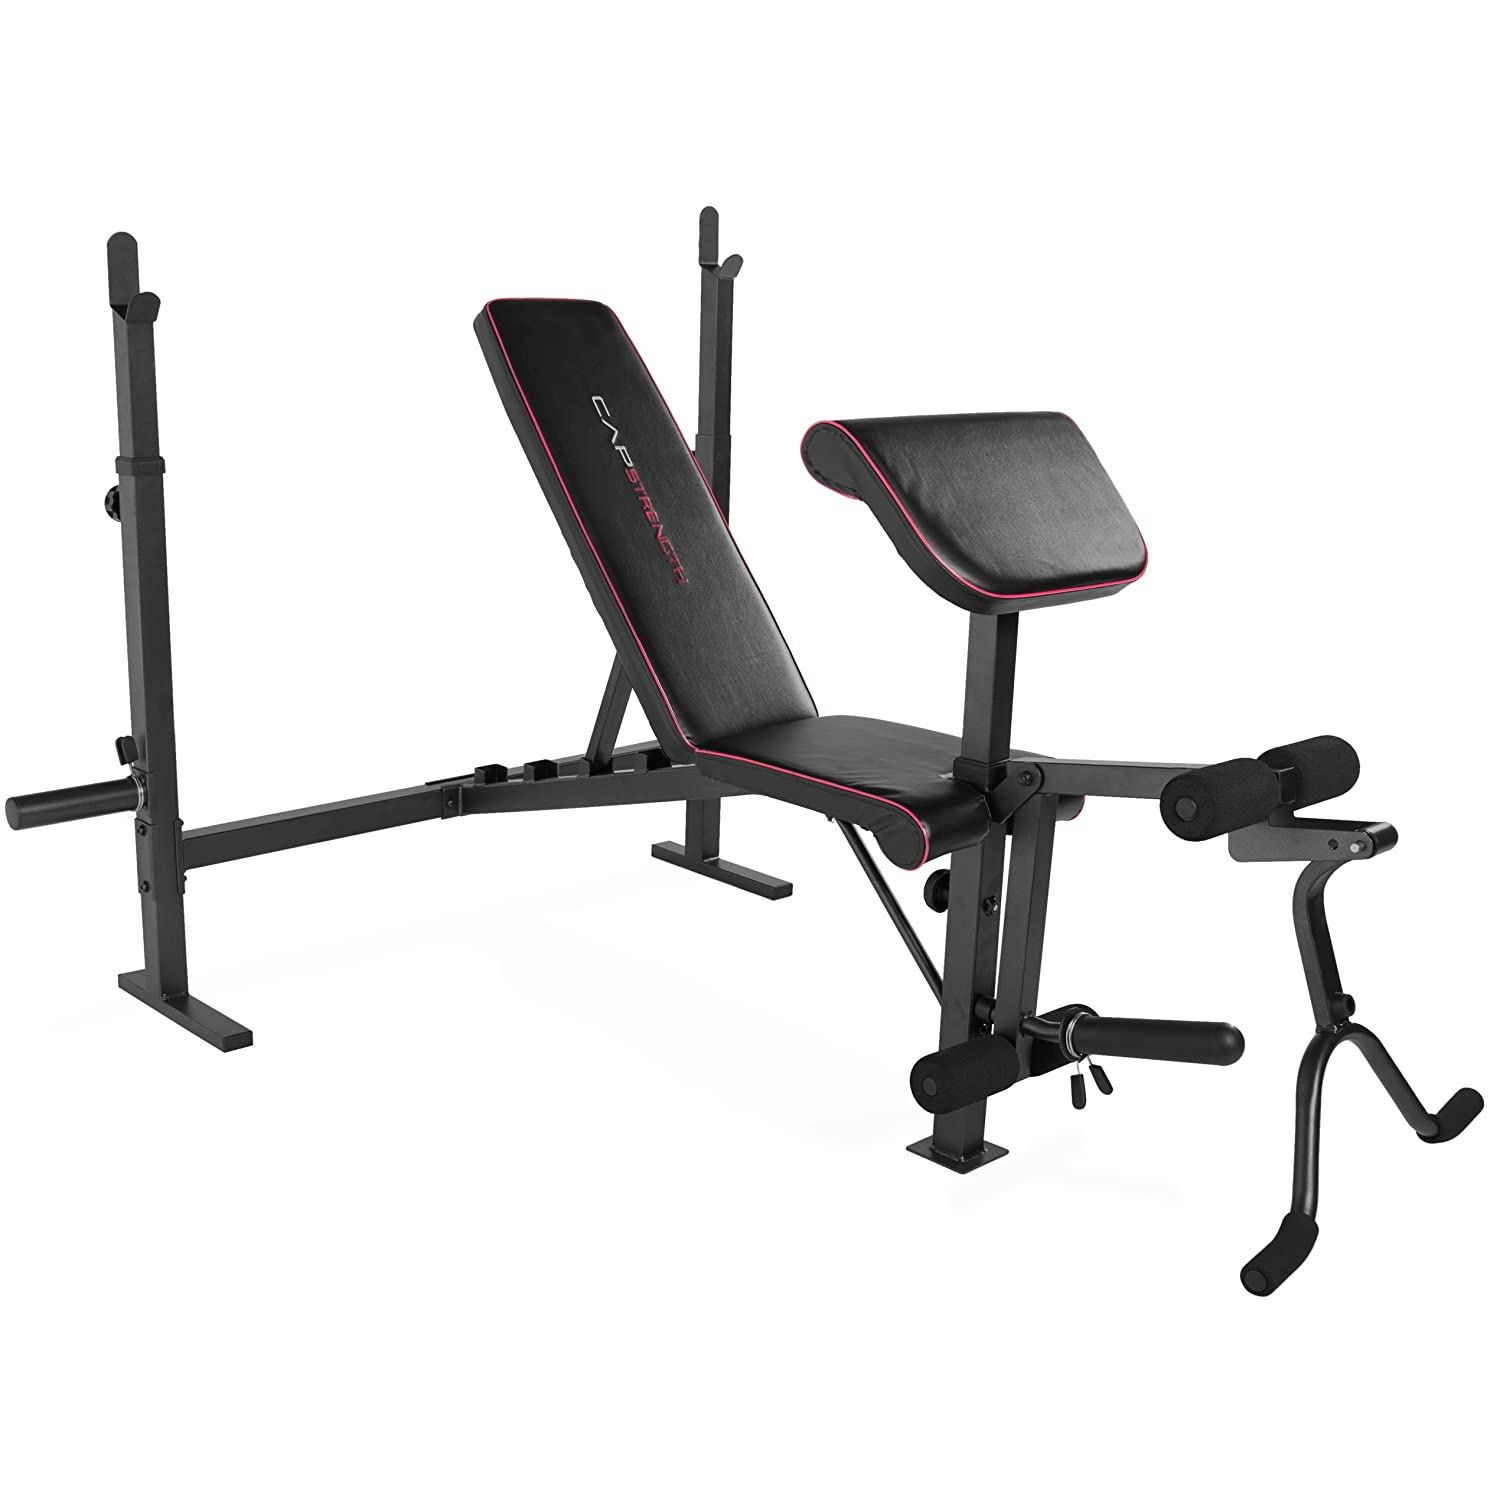 Cap Barbell Strength Olympic Weight Bench with Preacher Pad and Leg Attachment FM-CS7300